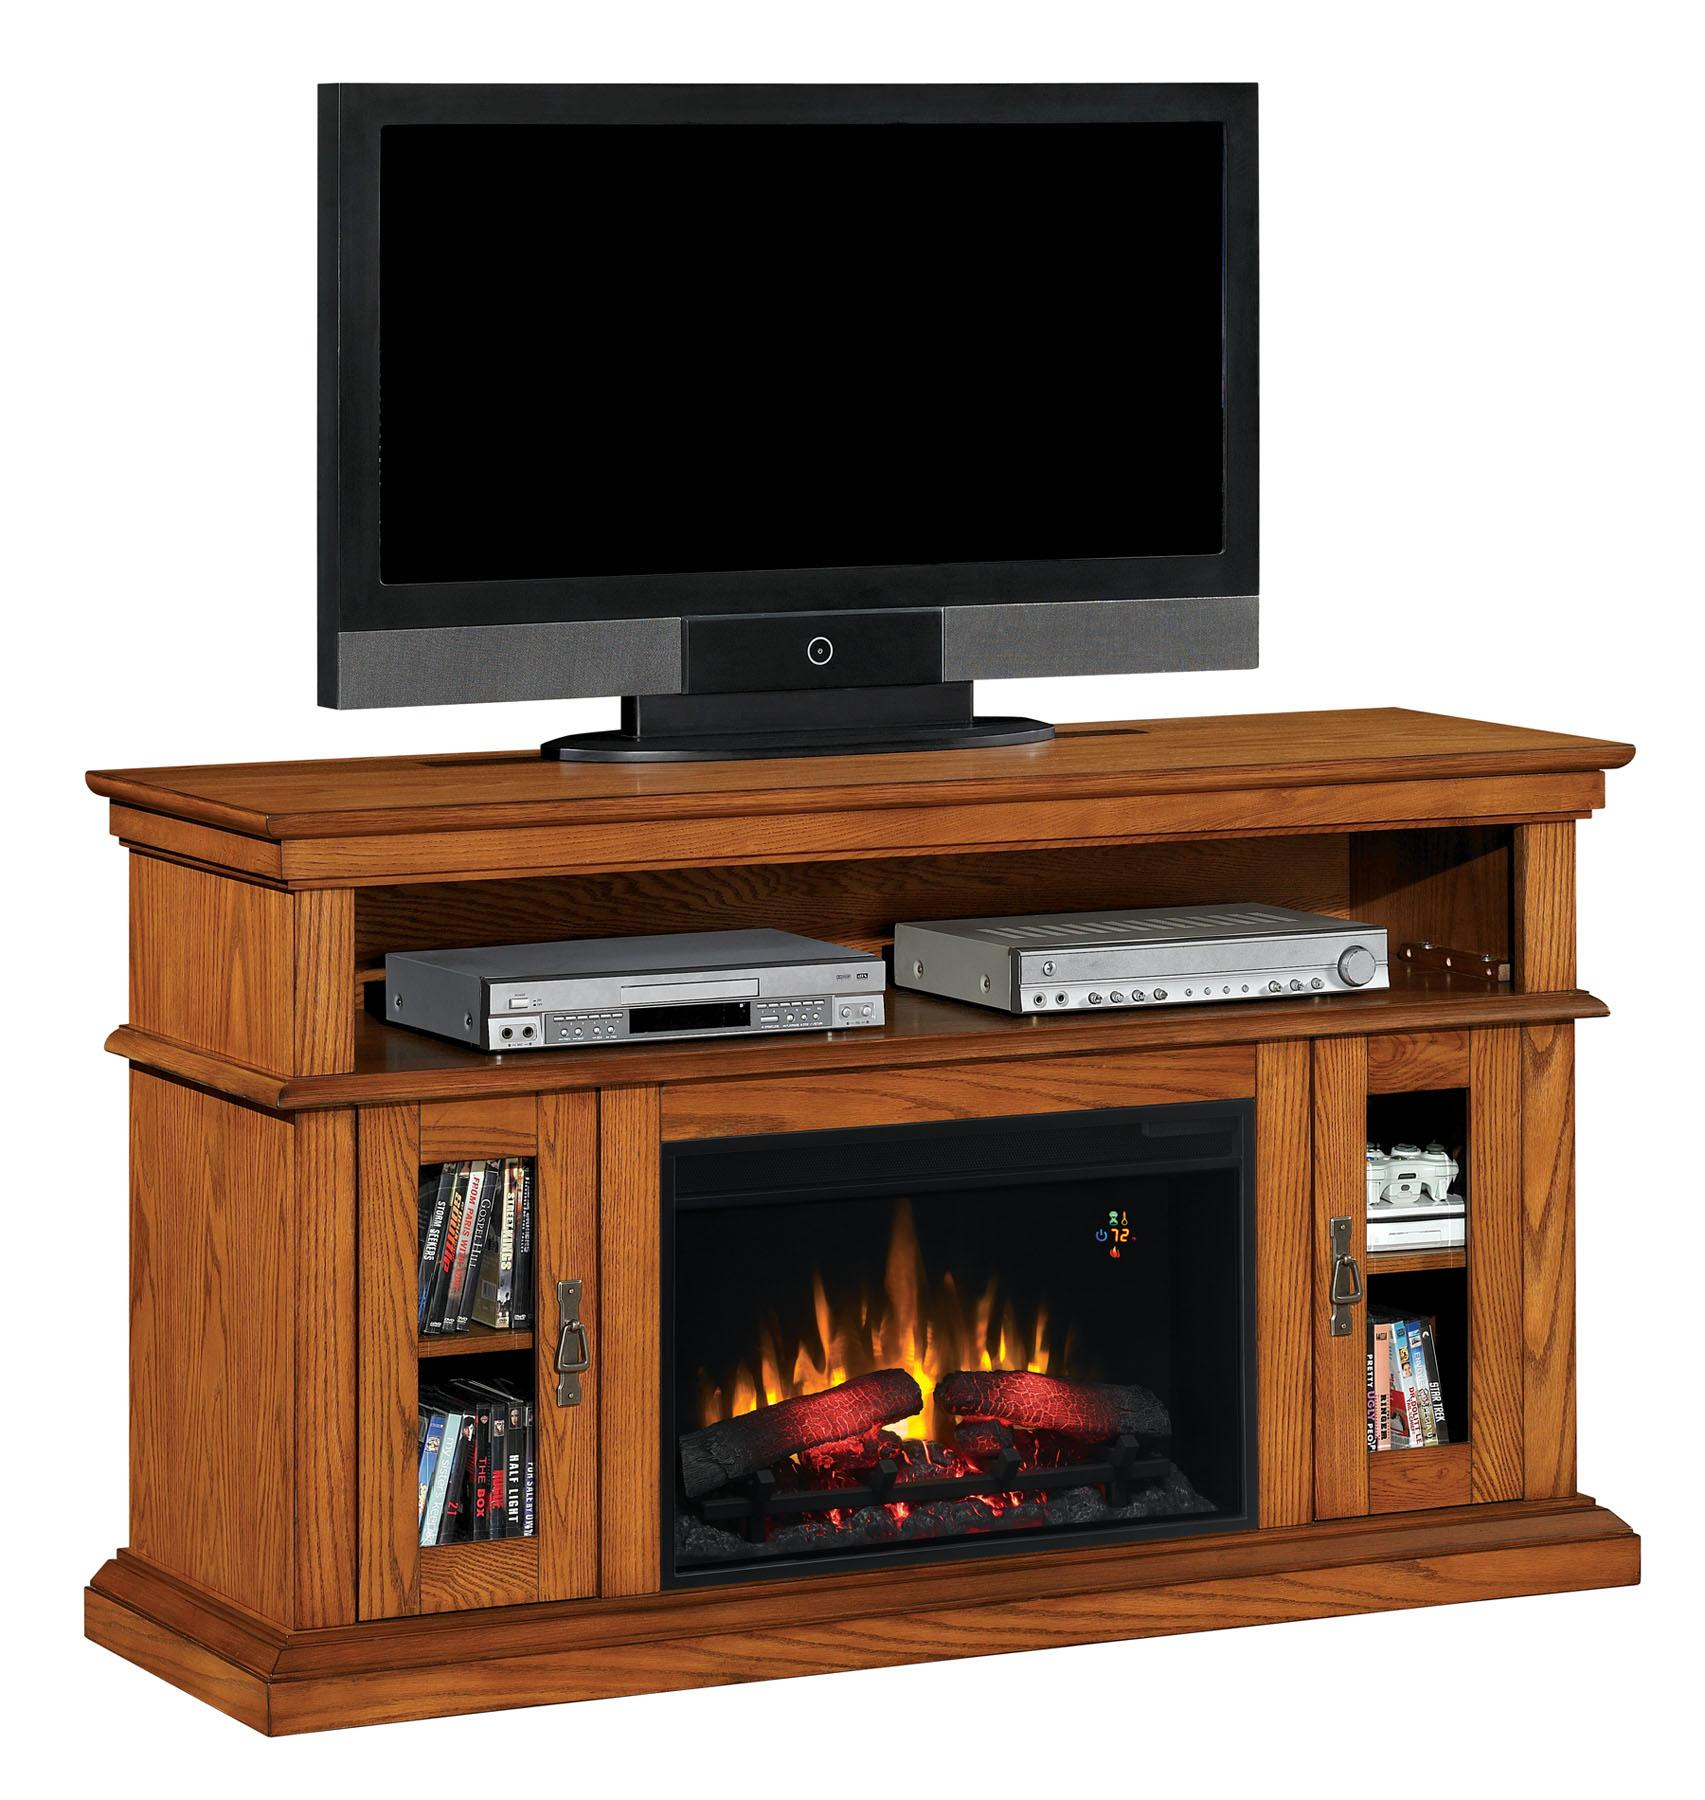 Amazon.com: ClassicFlame 26MM2209-O107 Brookfield TV Stand